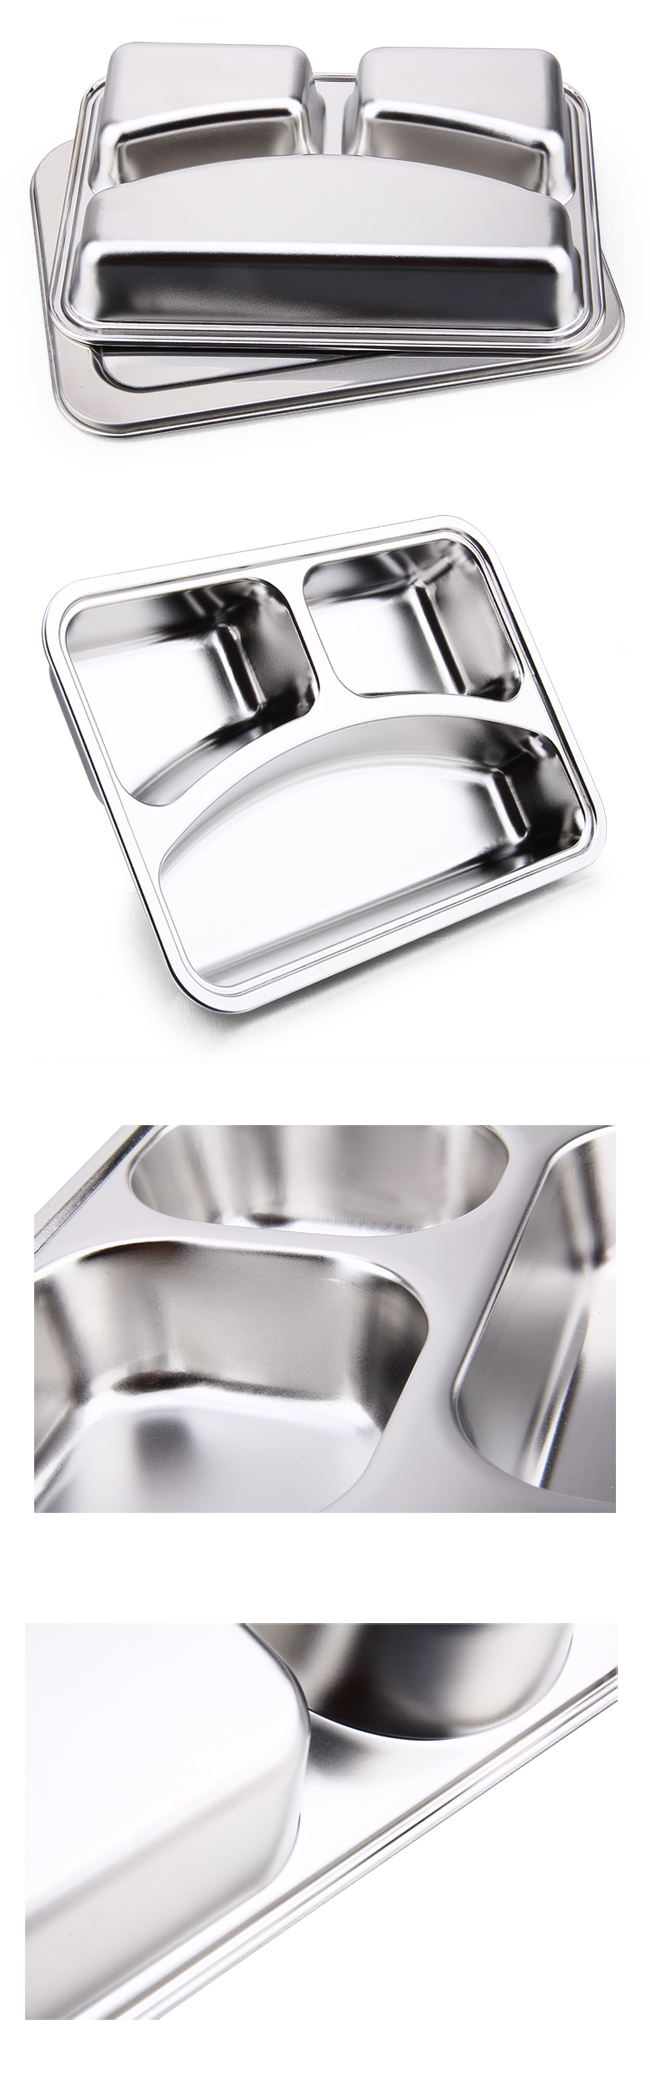 3 Dividers Stainless Steel Lunch Tray and Fast Food Plate for Kids